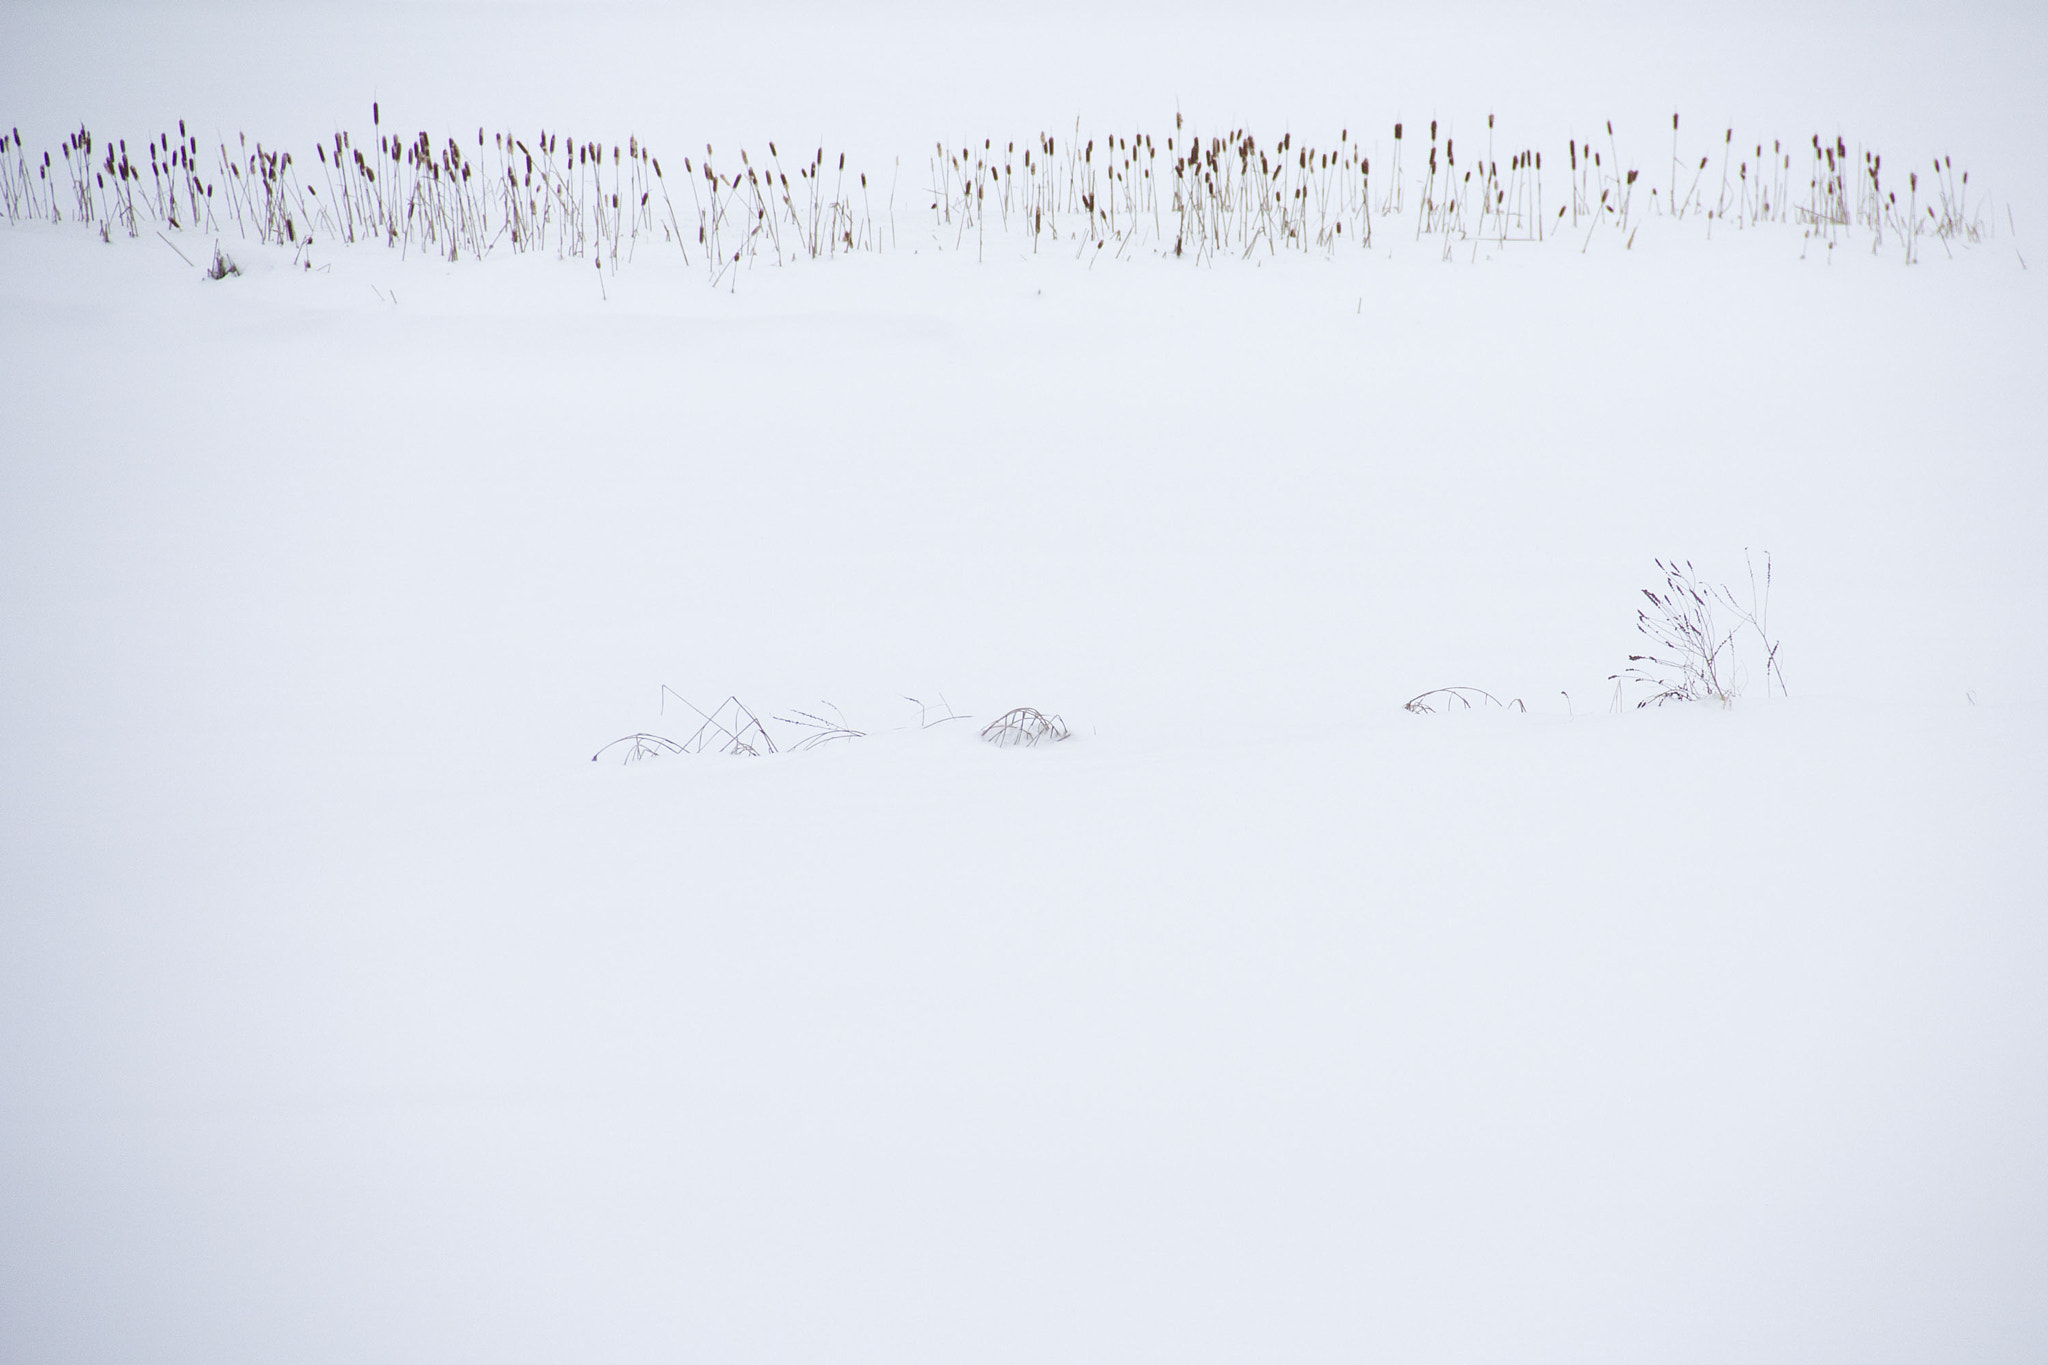 Photograph Cattails In The Snow by Amelie Belanger on 500px